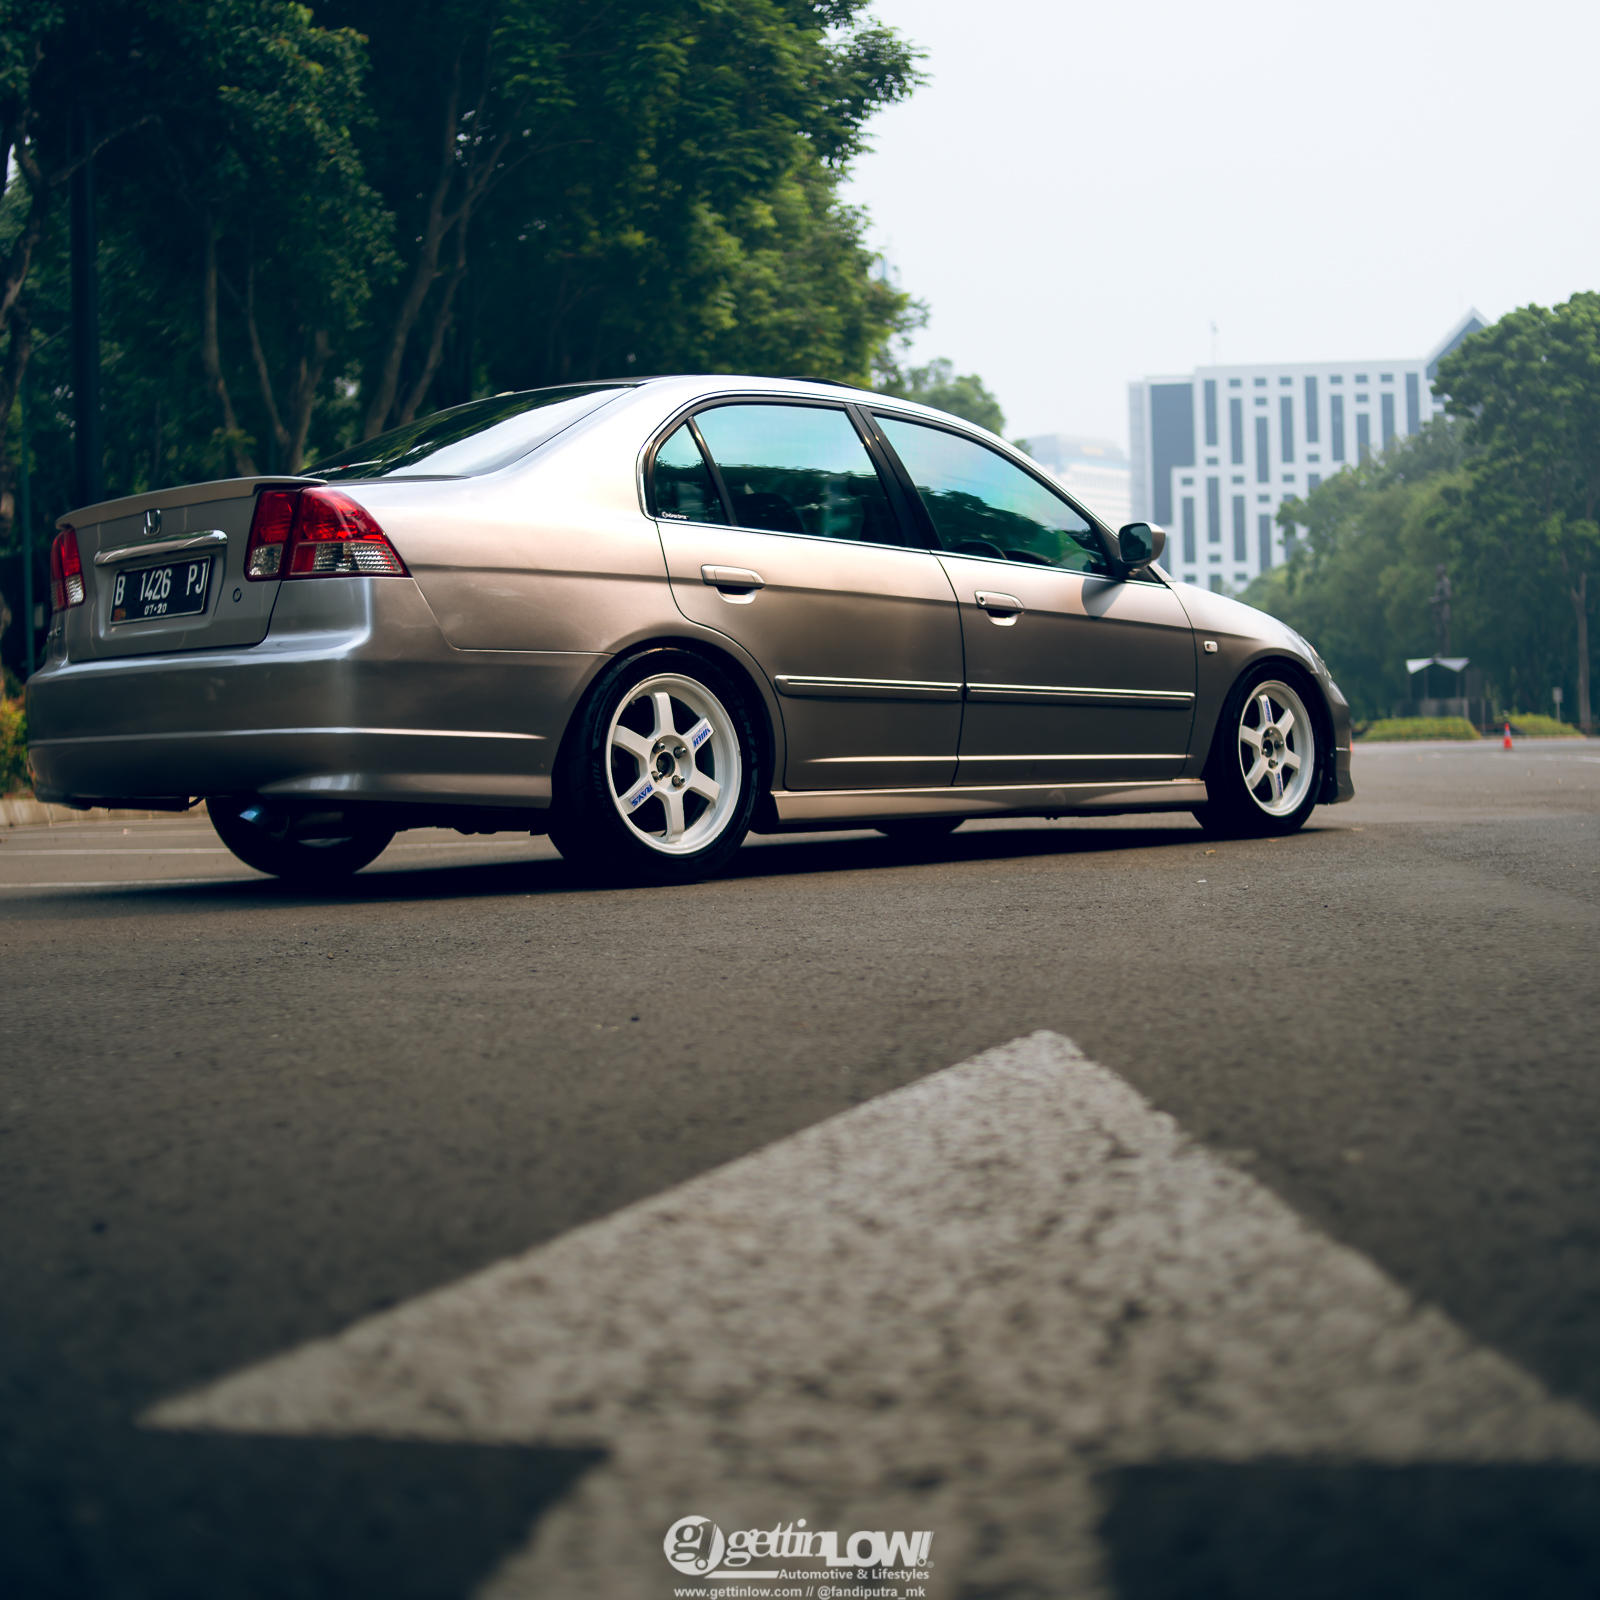 Civic ES at GBK